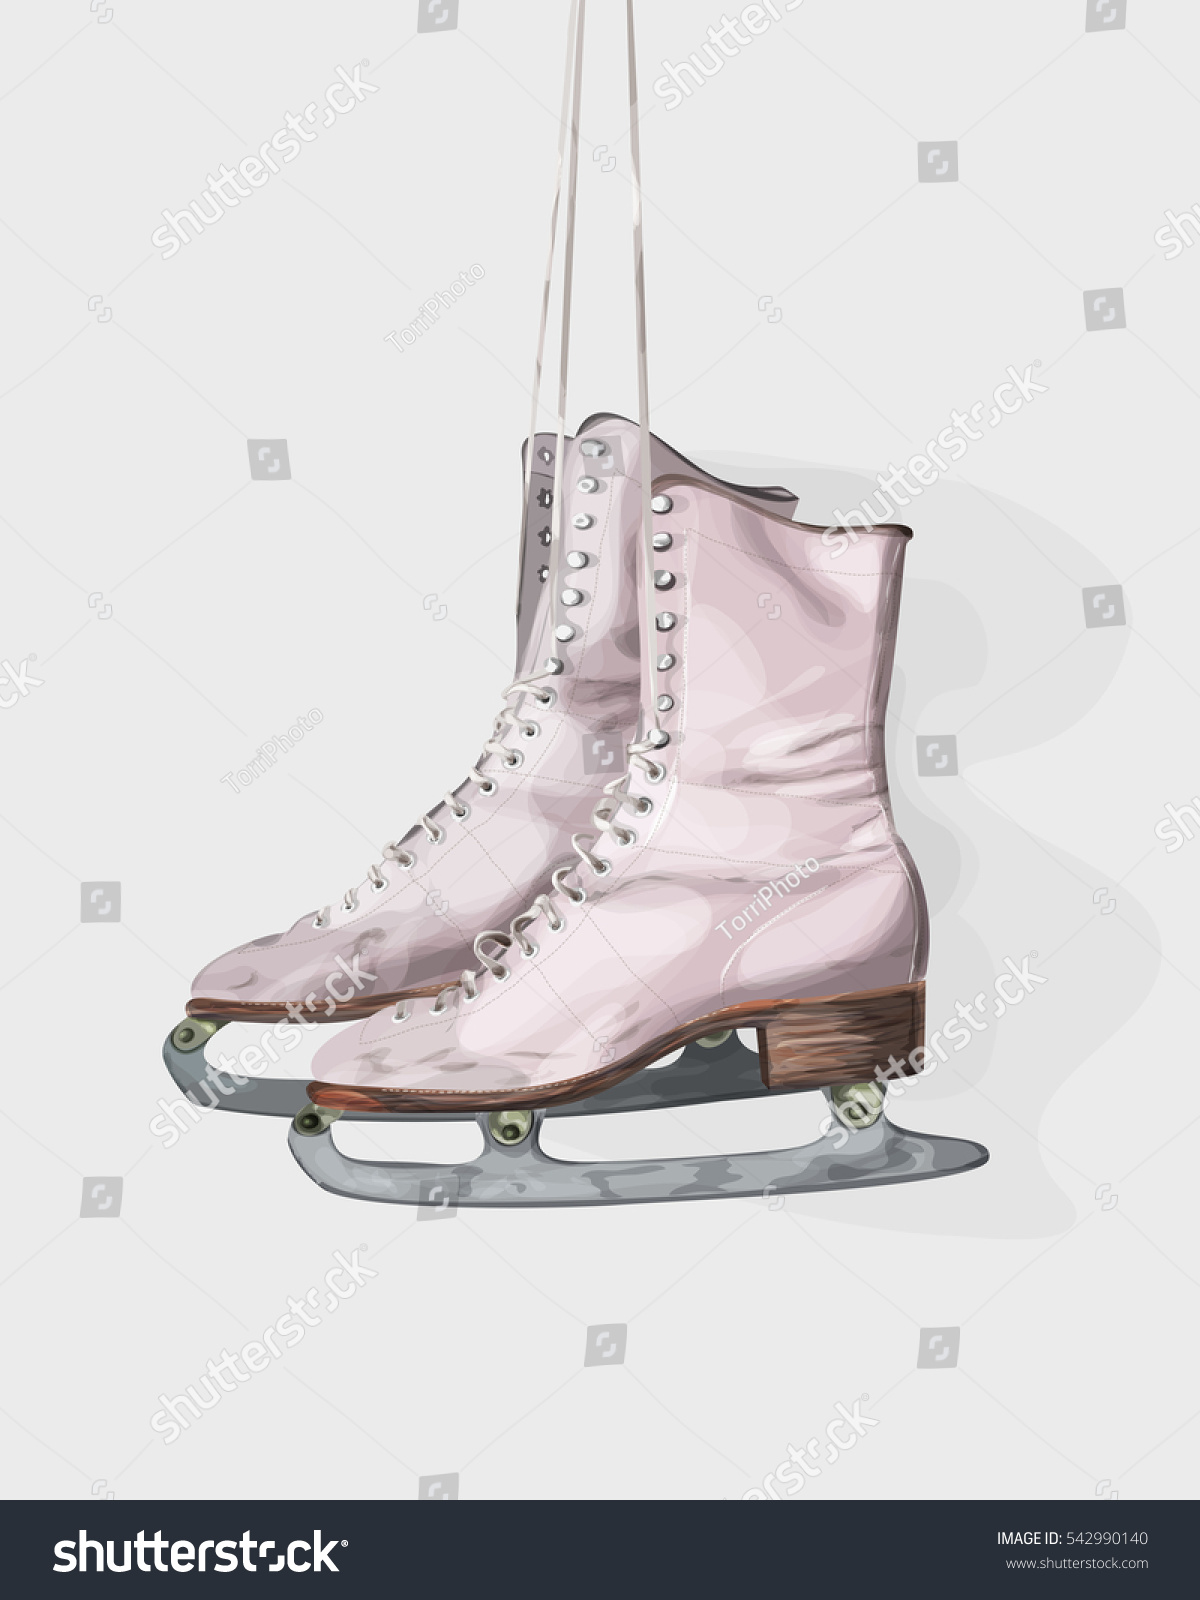 https://www.shutterstock.com/image-illustration/pair-pink-vintage-ice-skates-hanging-542990140